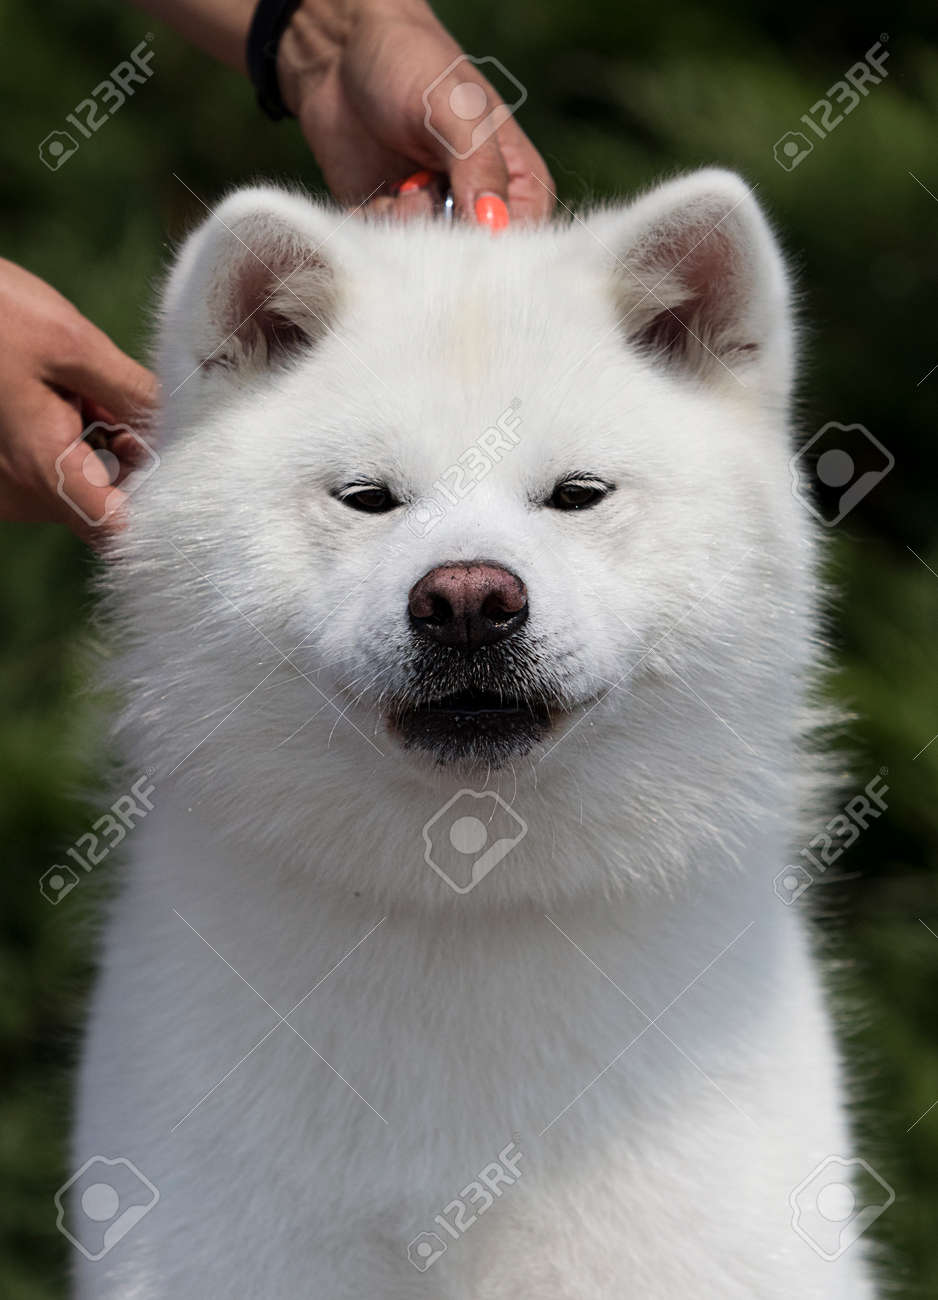 White Dog Breed Japanese Akita Inu Outdoors Stock Photo Picture And Royalty Free Image Image 127819807